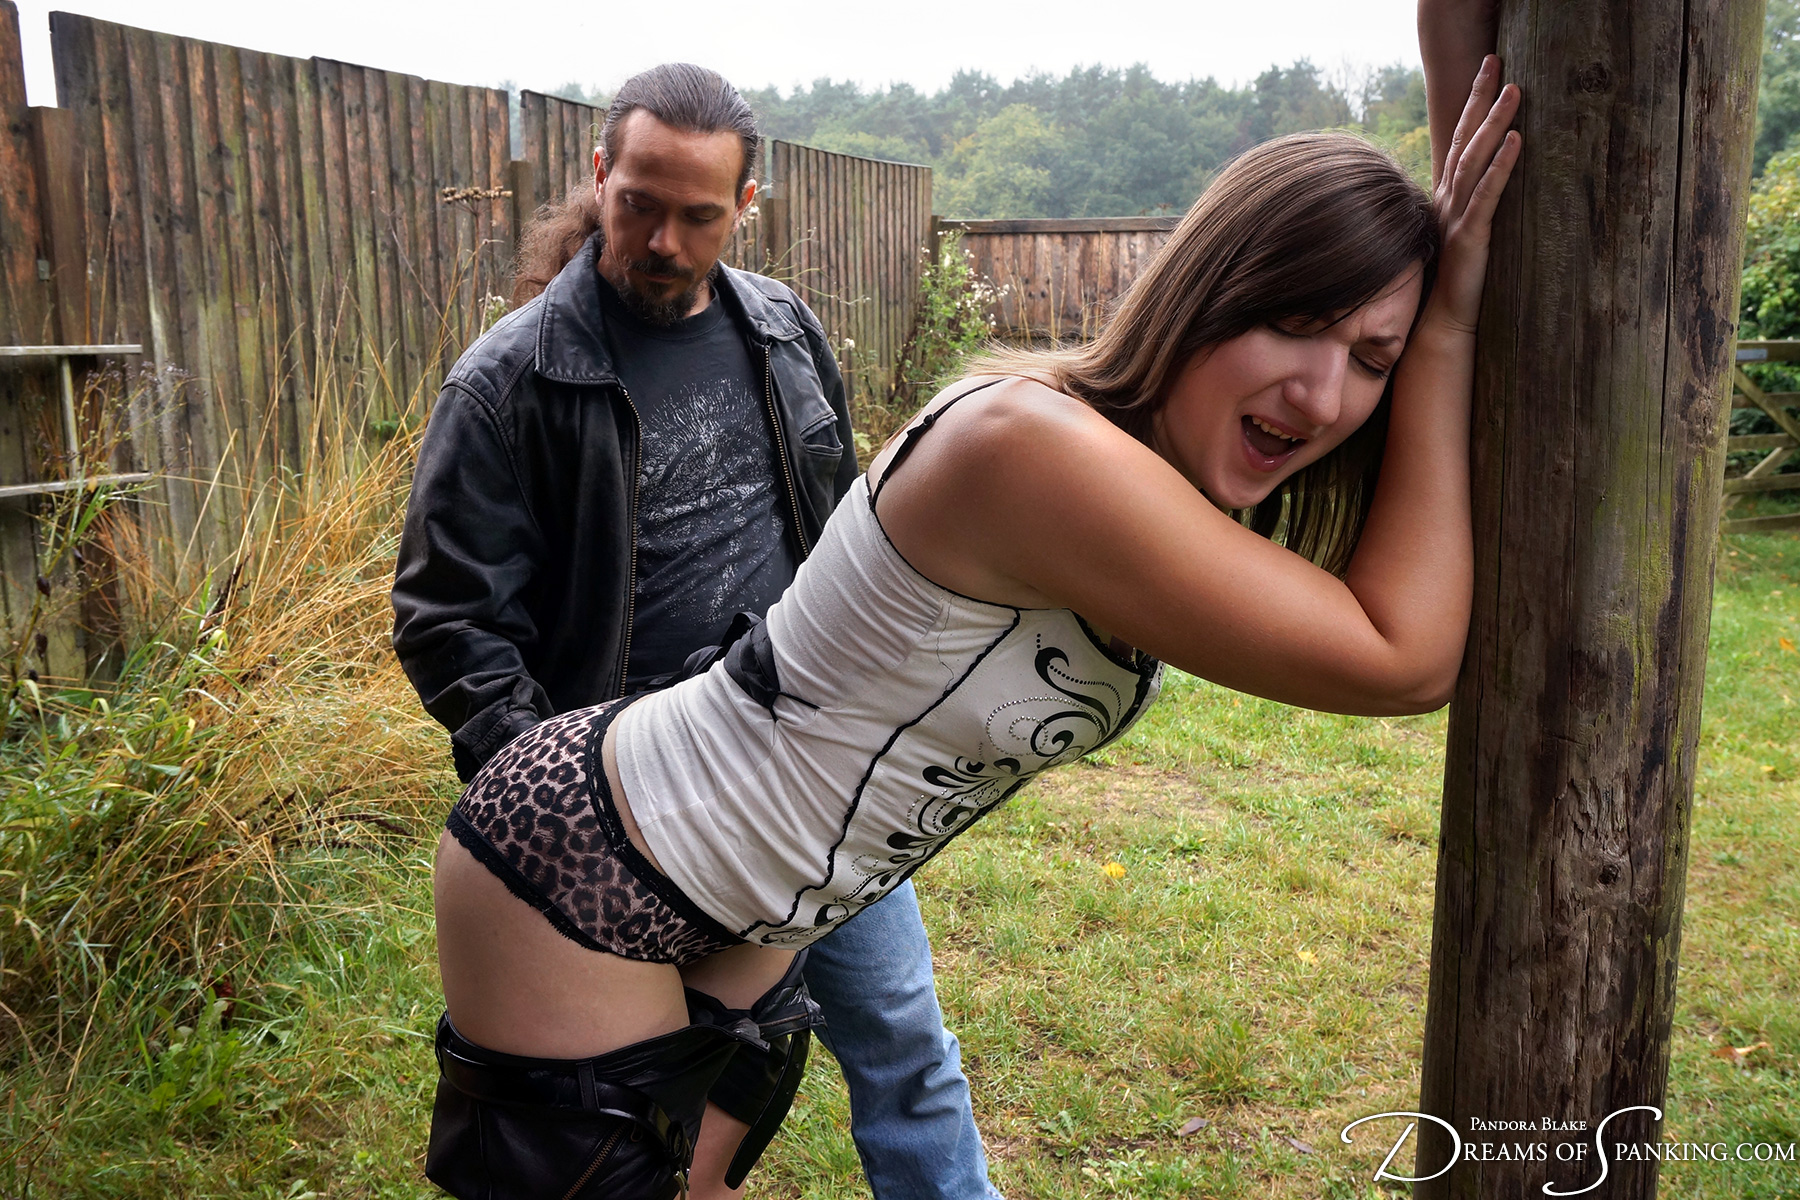 Pandora Blake strapped in leather shorts by Thomas Cameron at Dreams of Spanking